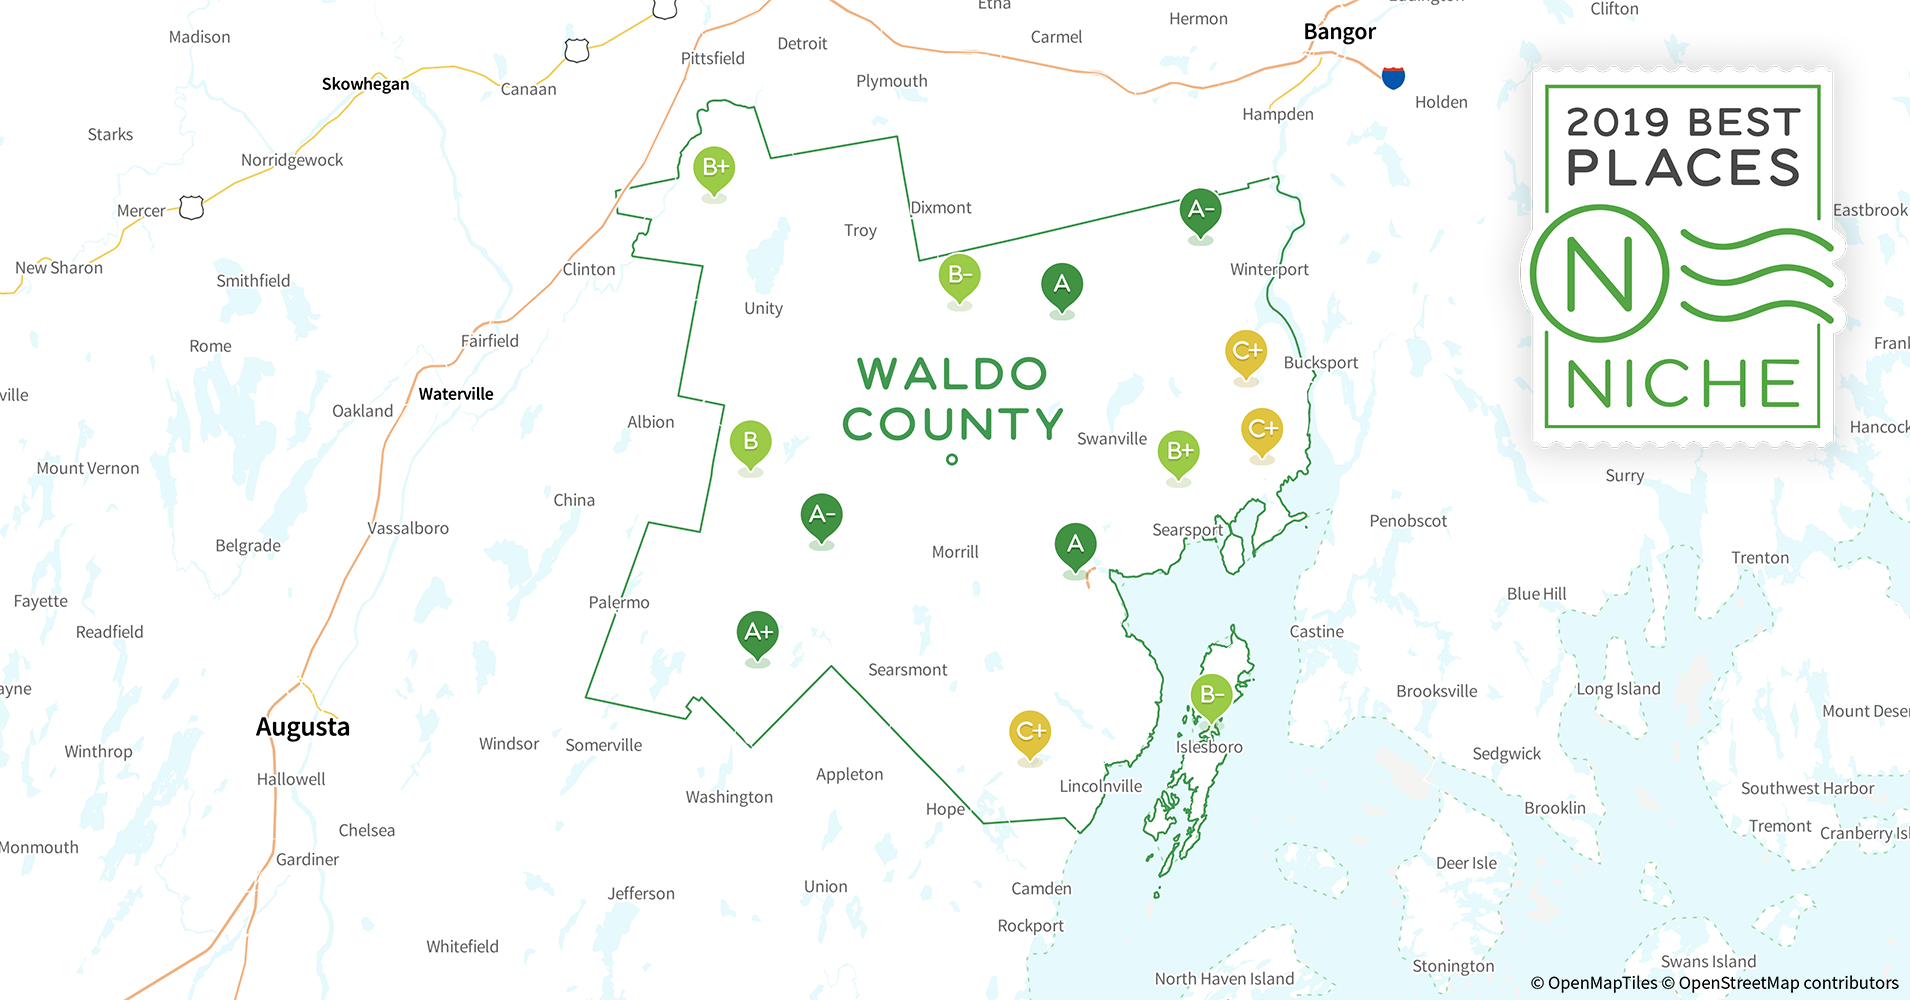 Best Of The Best Waldo County 2019 2019 Best Places to Live in Waldo County, ME   Niche